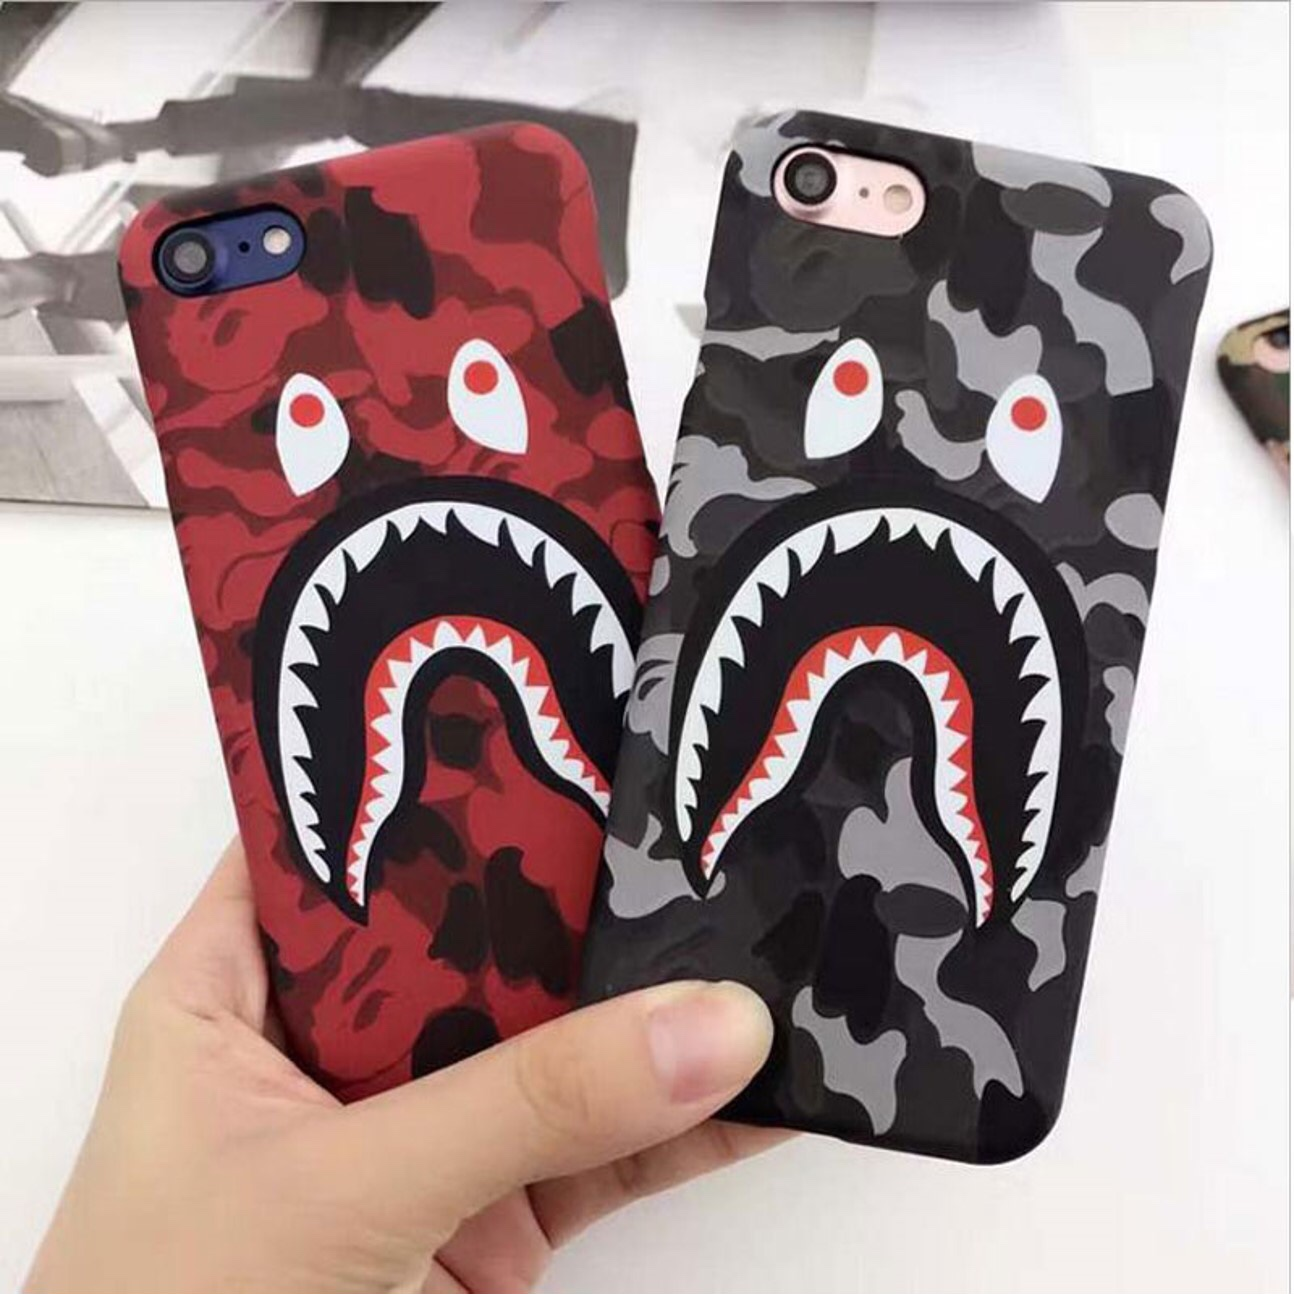 competitive price 7d828 bd061 BAPE IPHONE CASE FREE SHIPPING Available... - Depop